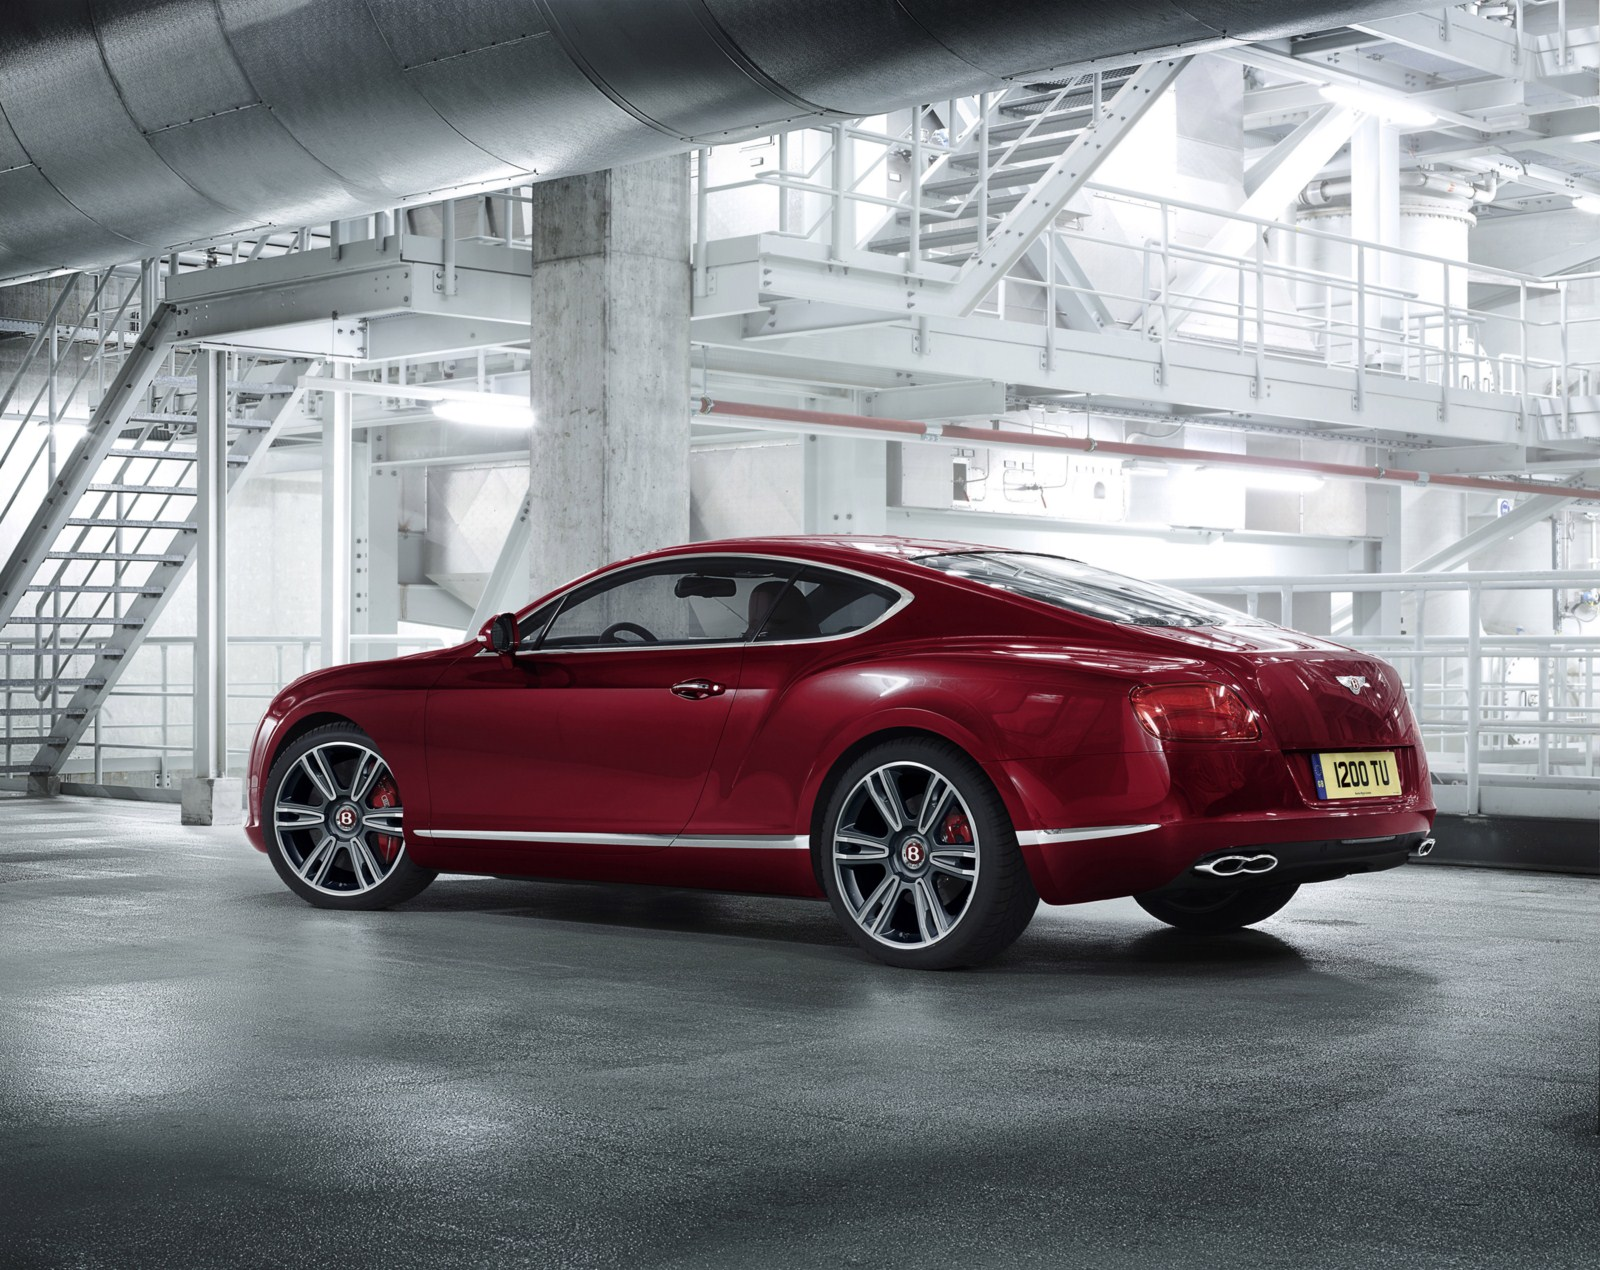 http://www.autoblog.gr/wp-content/gallery/bentley-continental-gt-and-gtc-v8-live-in-geneva-2012/bentley-continental-gt-v8-13.jpg